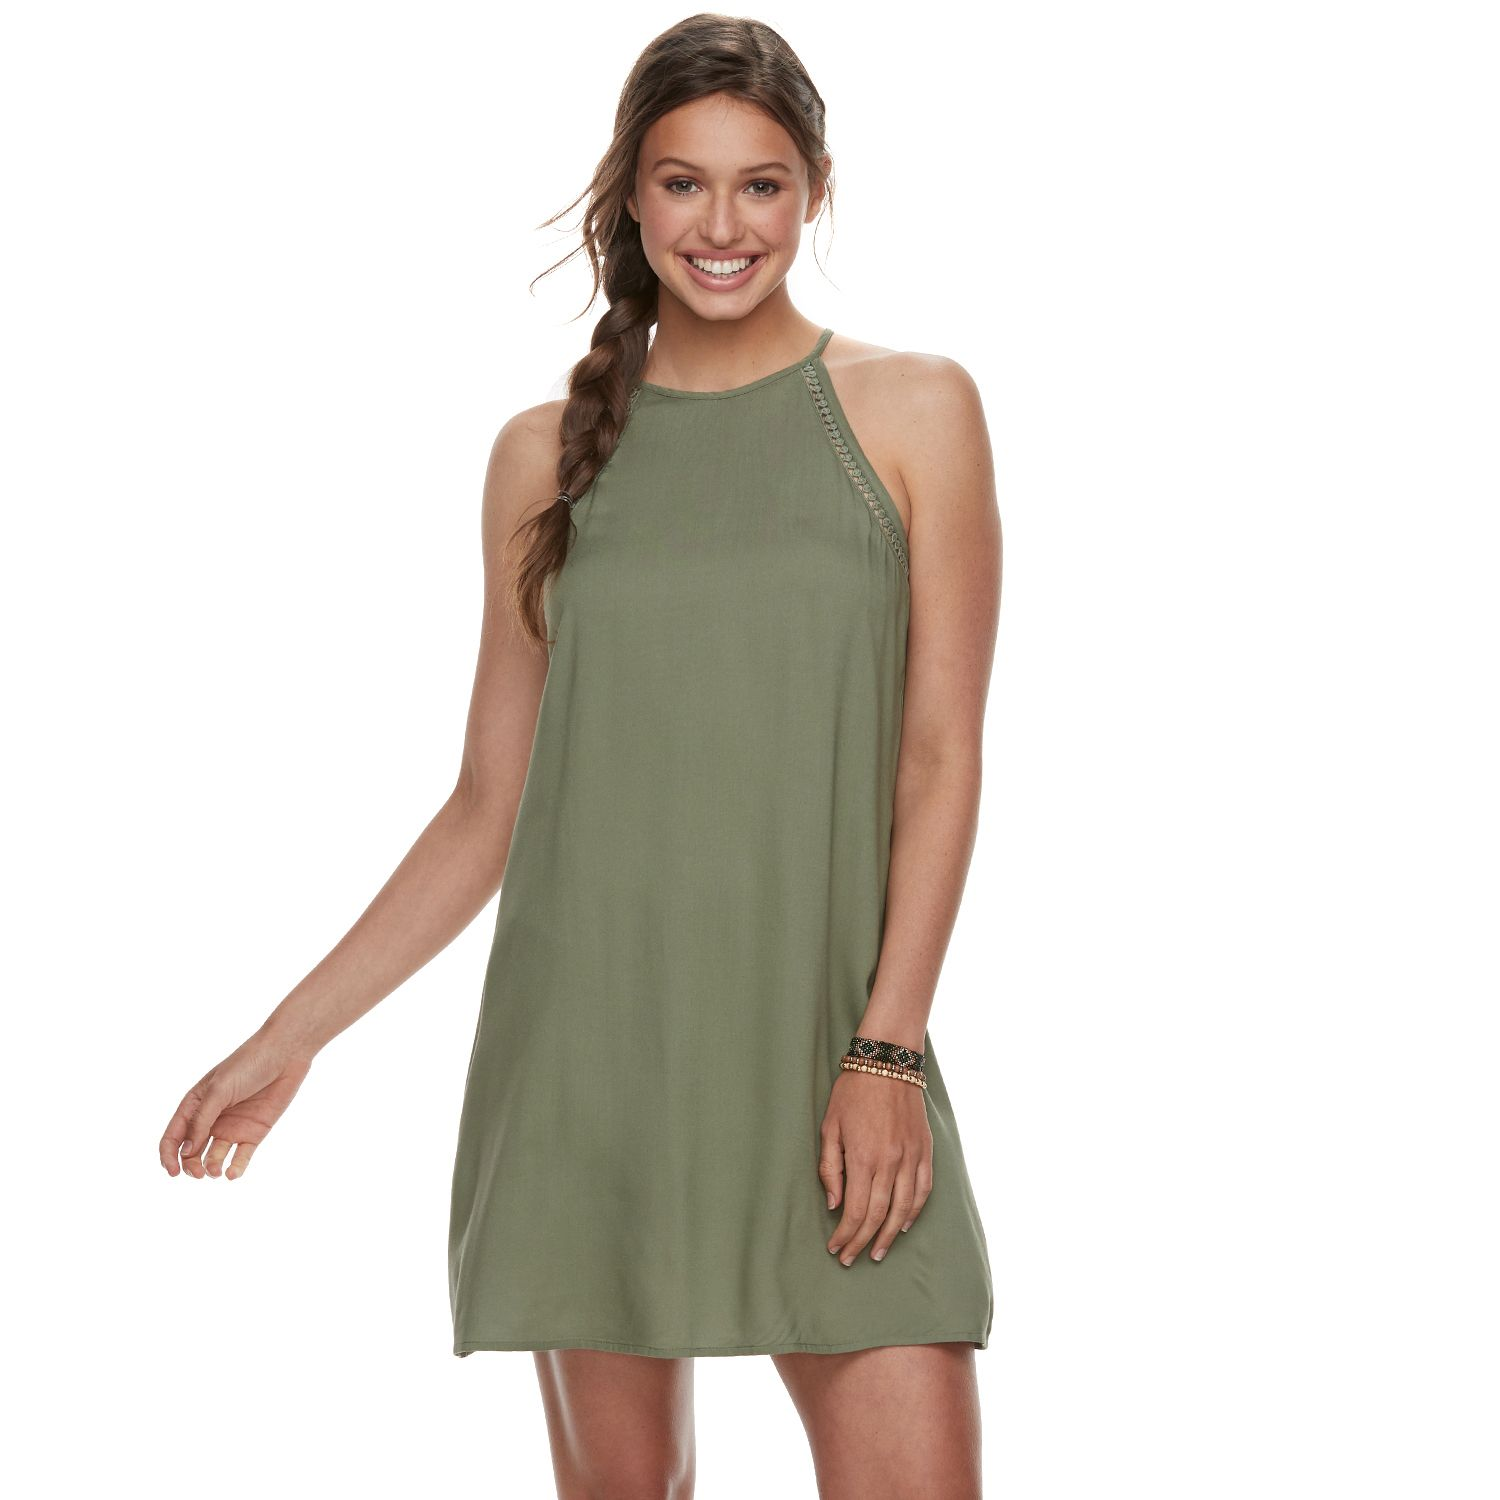 Green Dress for Juniors